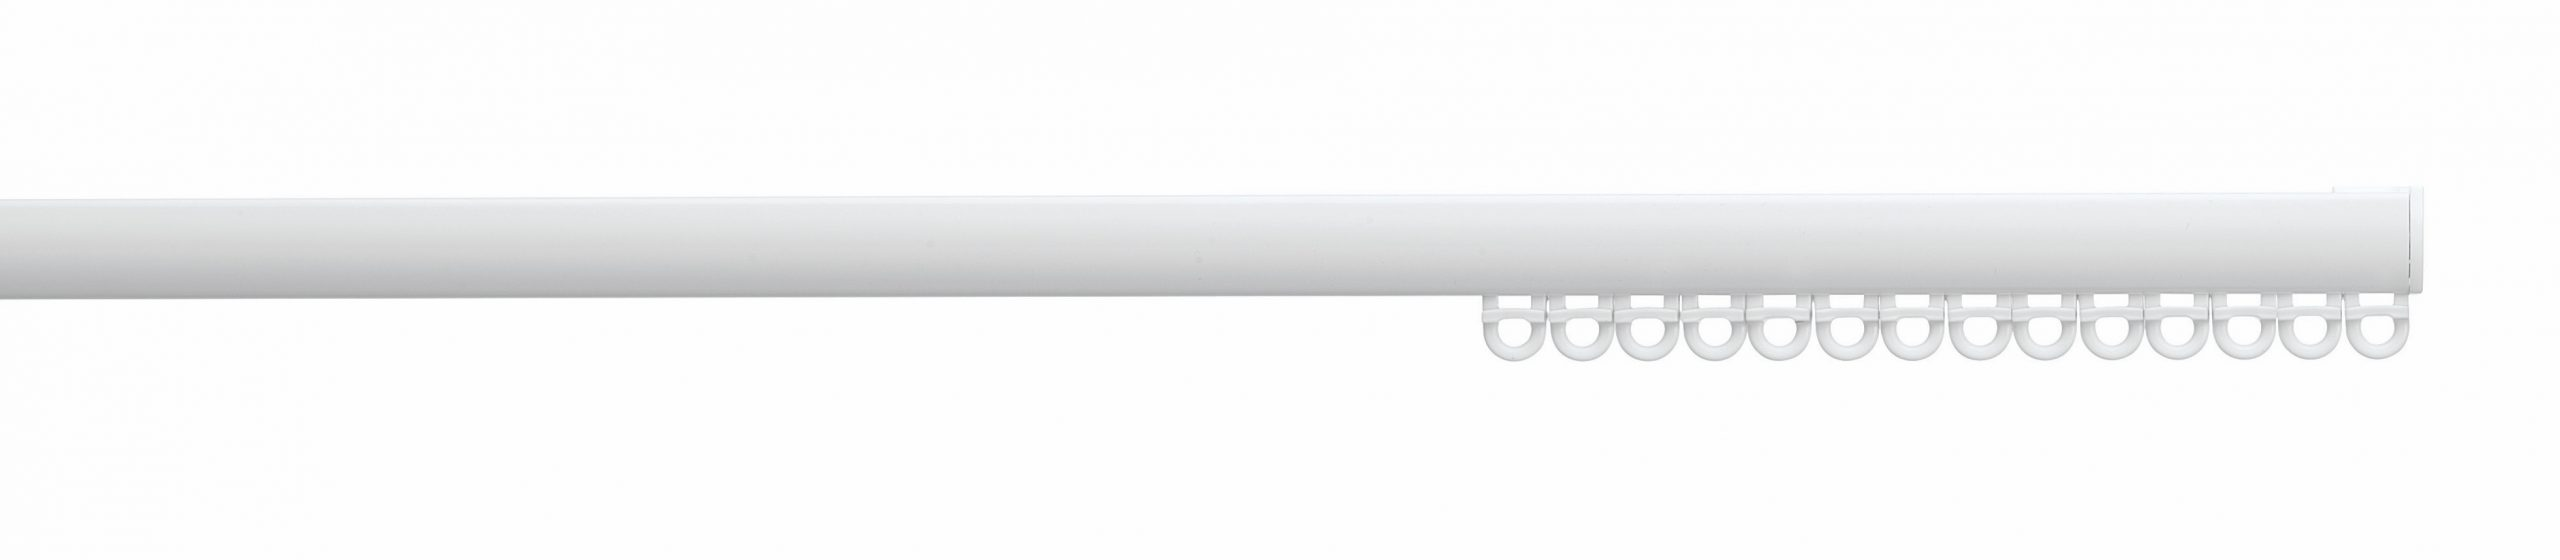 Silent Gliss System 6010 Uncorded  Aluminium  Curtain Track - suitable for wave curtains